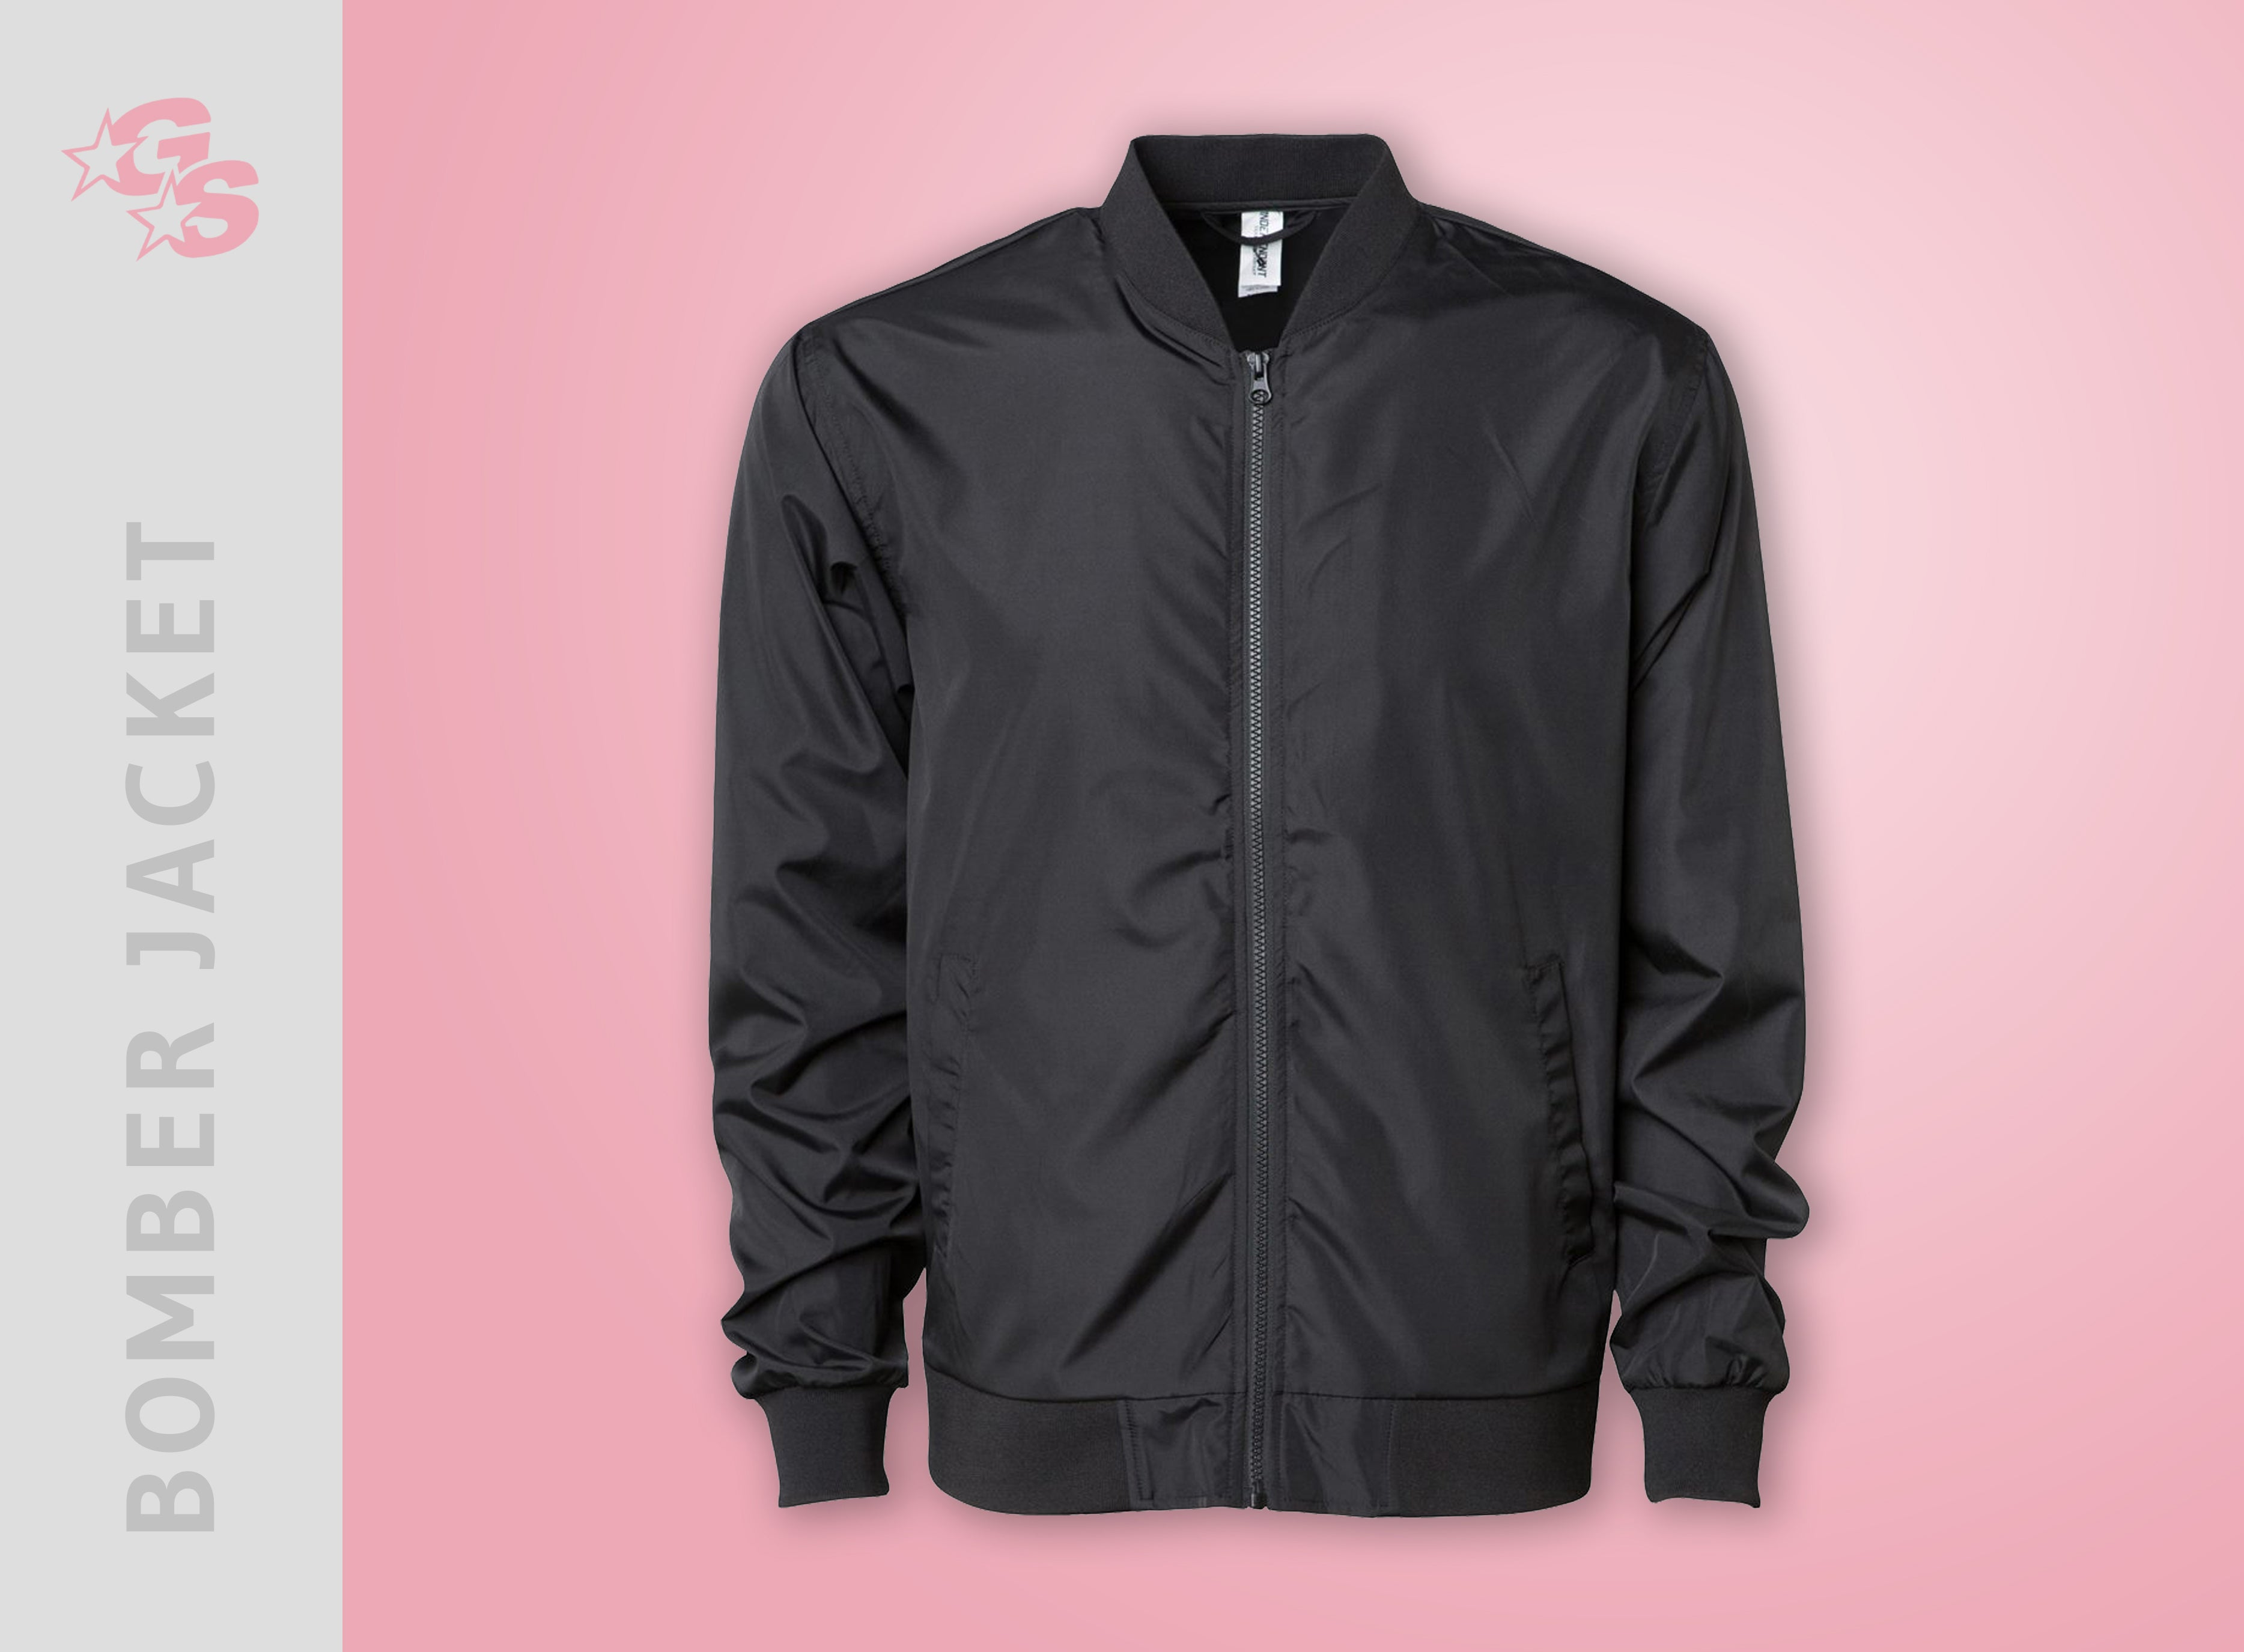 Titan Cheer Alliance Bomber Jacket